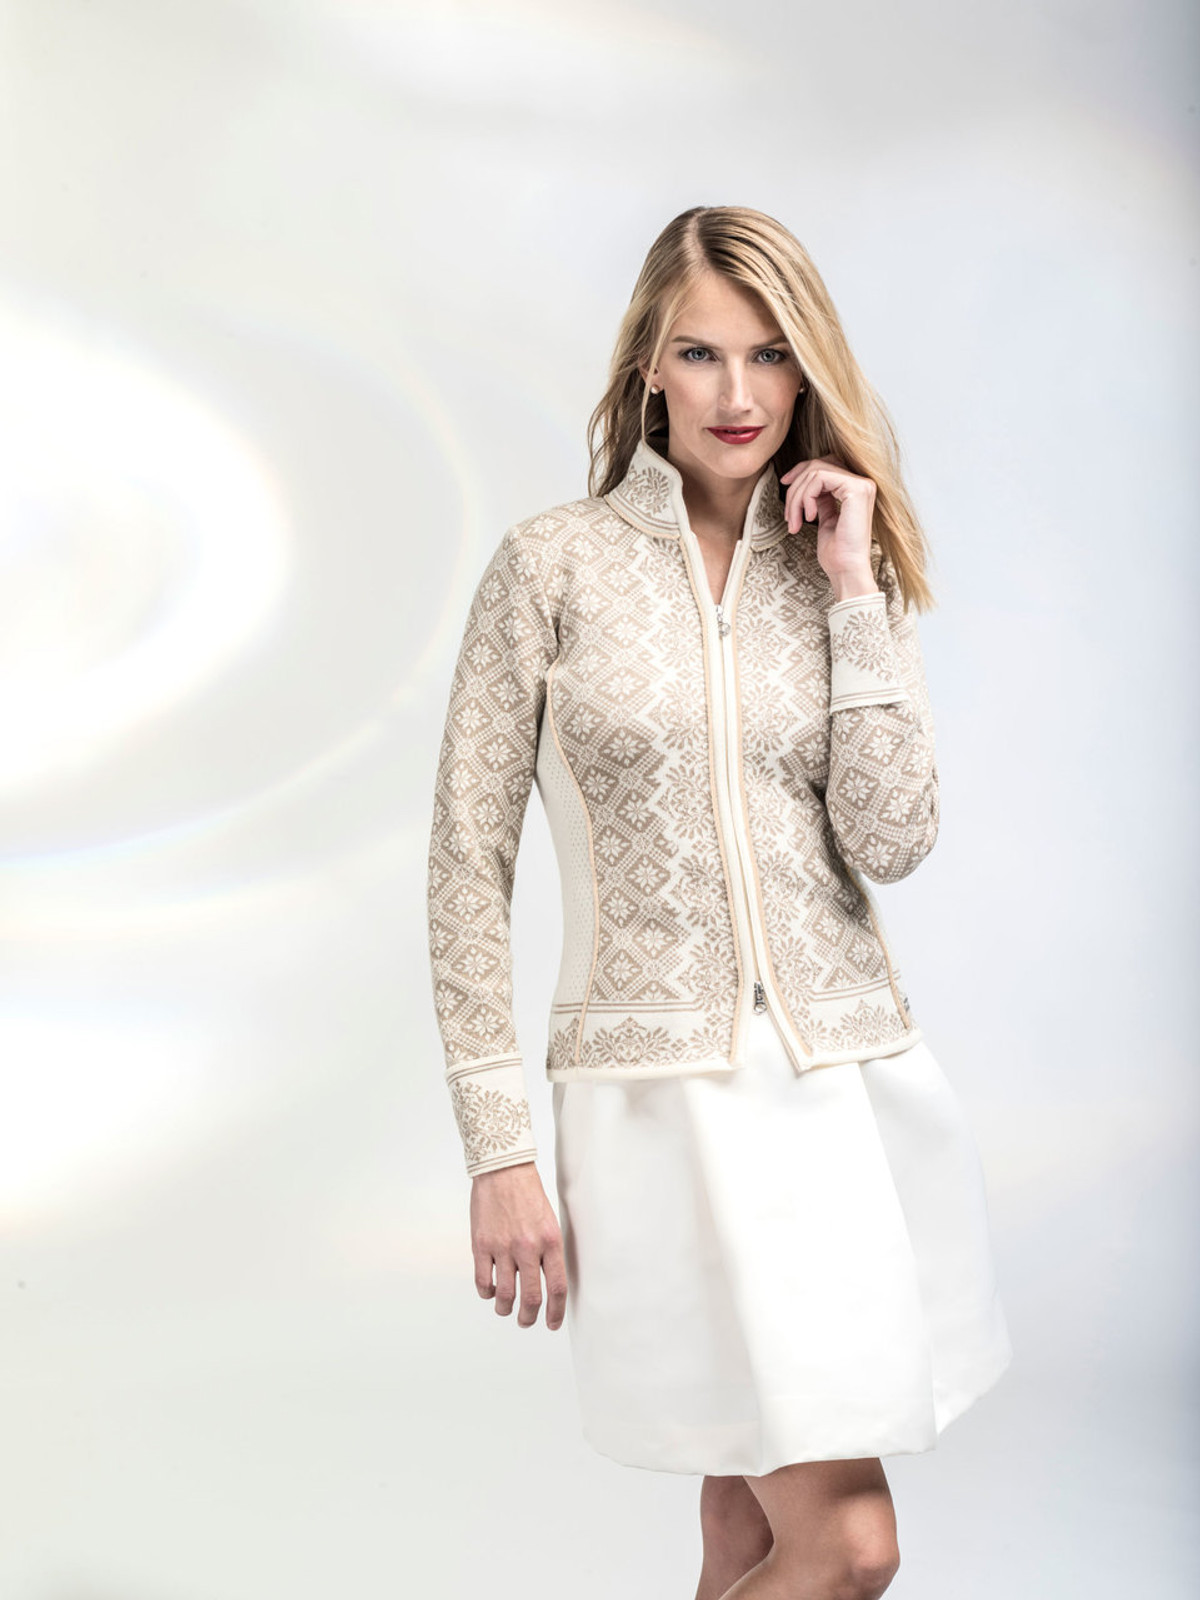 Woman modeling Dale of Norway's Christiania Ladies Cardigan in Off White/Beige, 81951-P